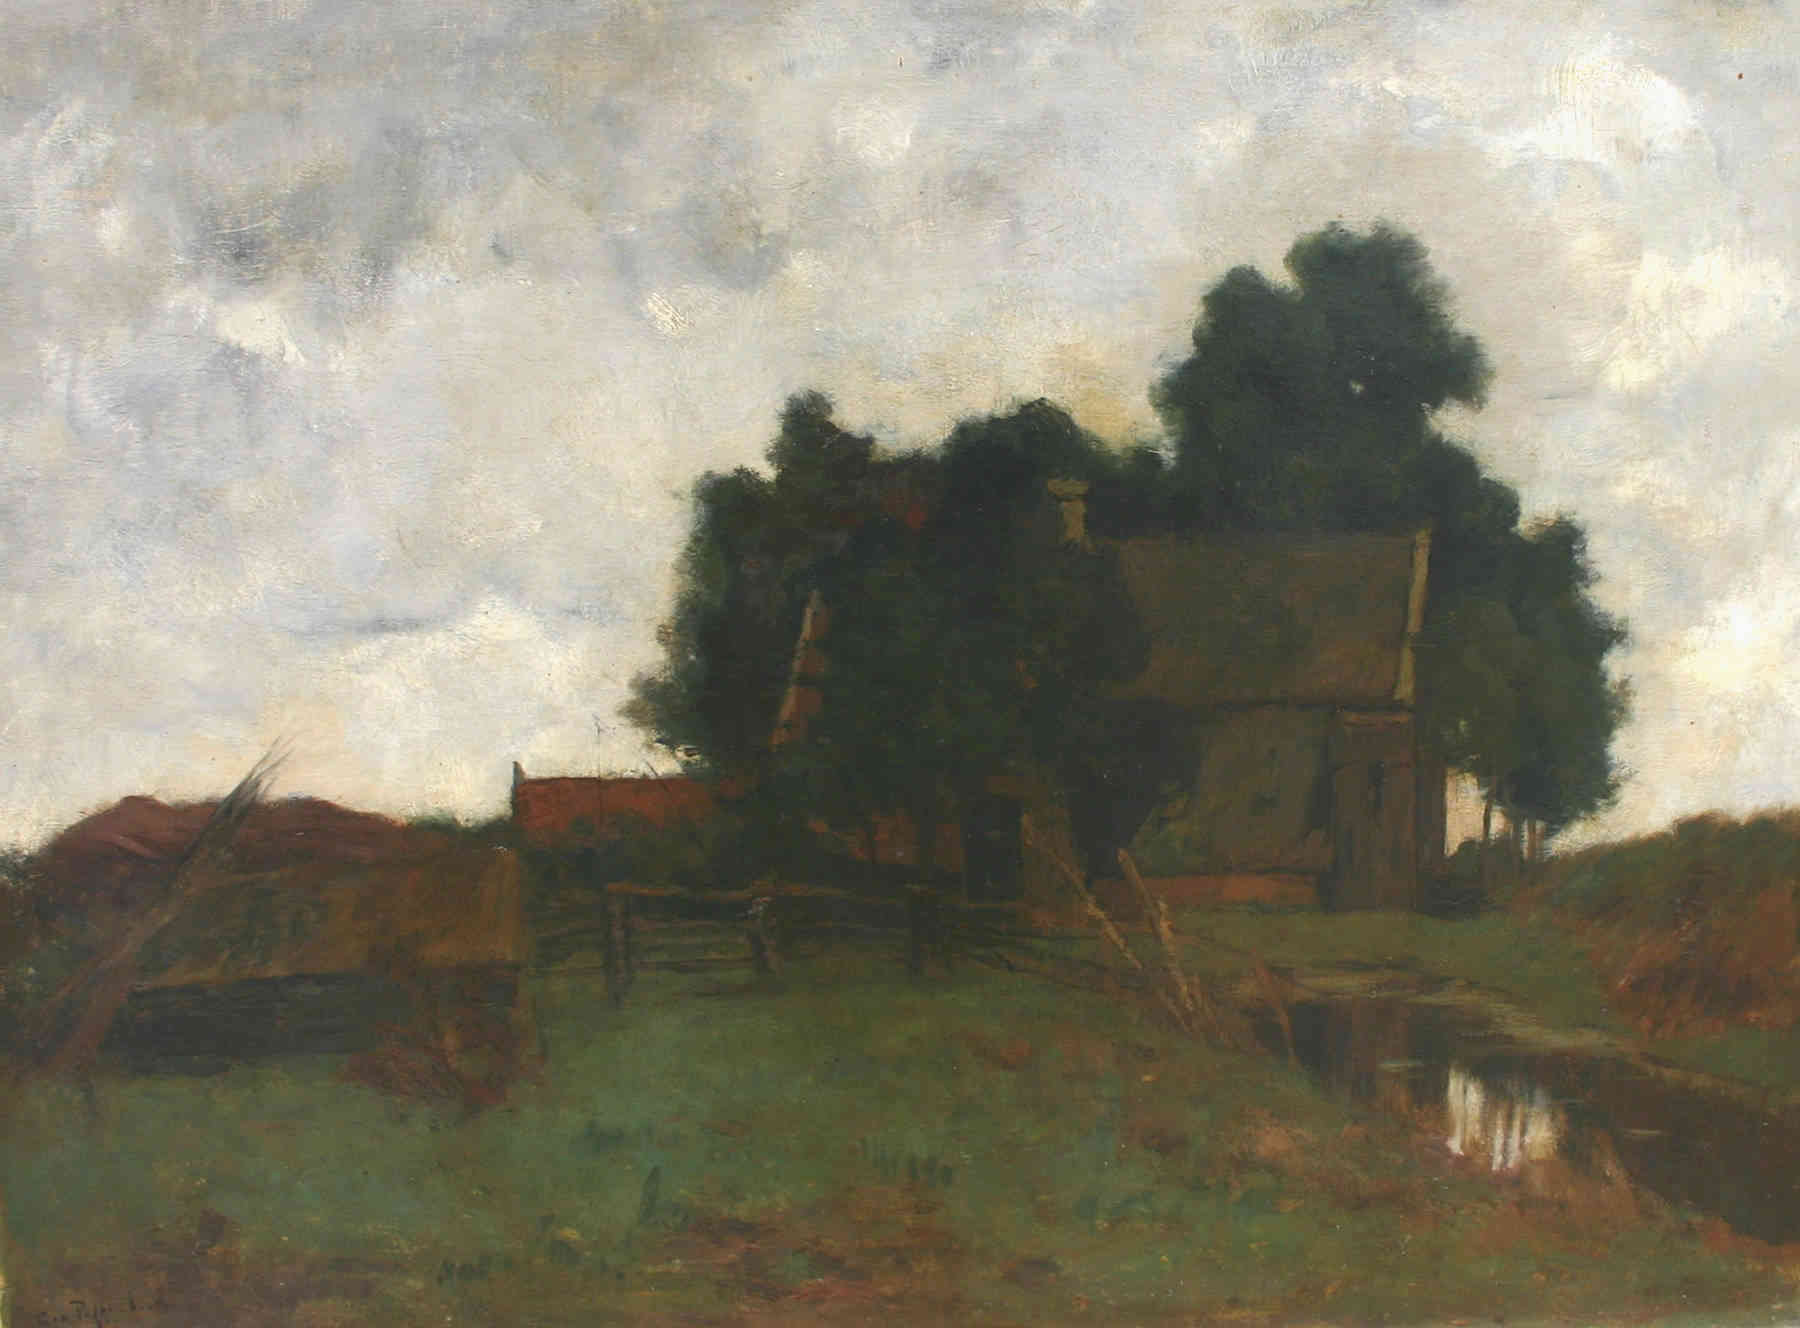 Regenstemming George Jan Hendrik (Geo) Poggenbeek (1853-1903) - Kunsthandel Studio 2000